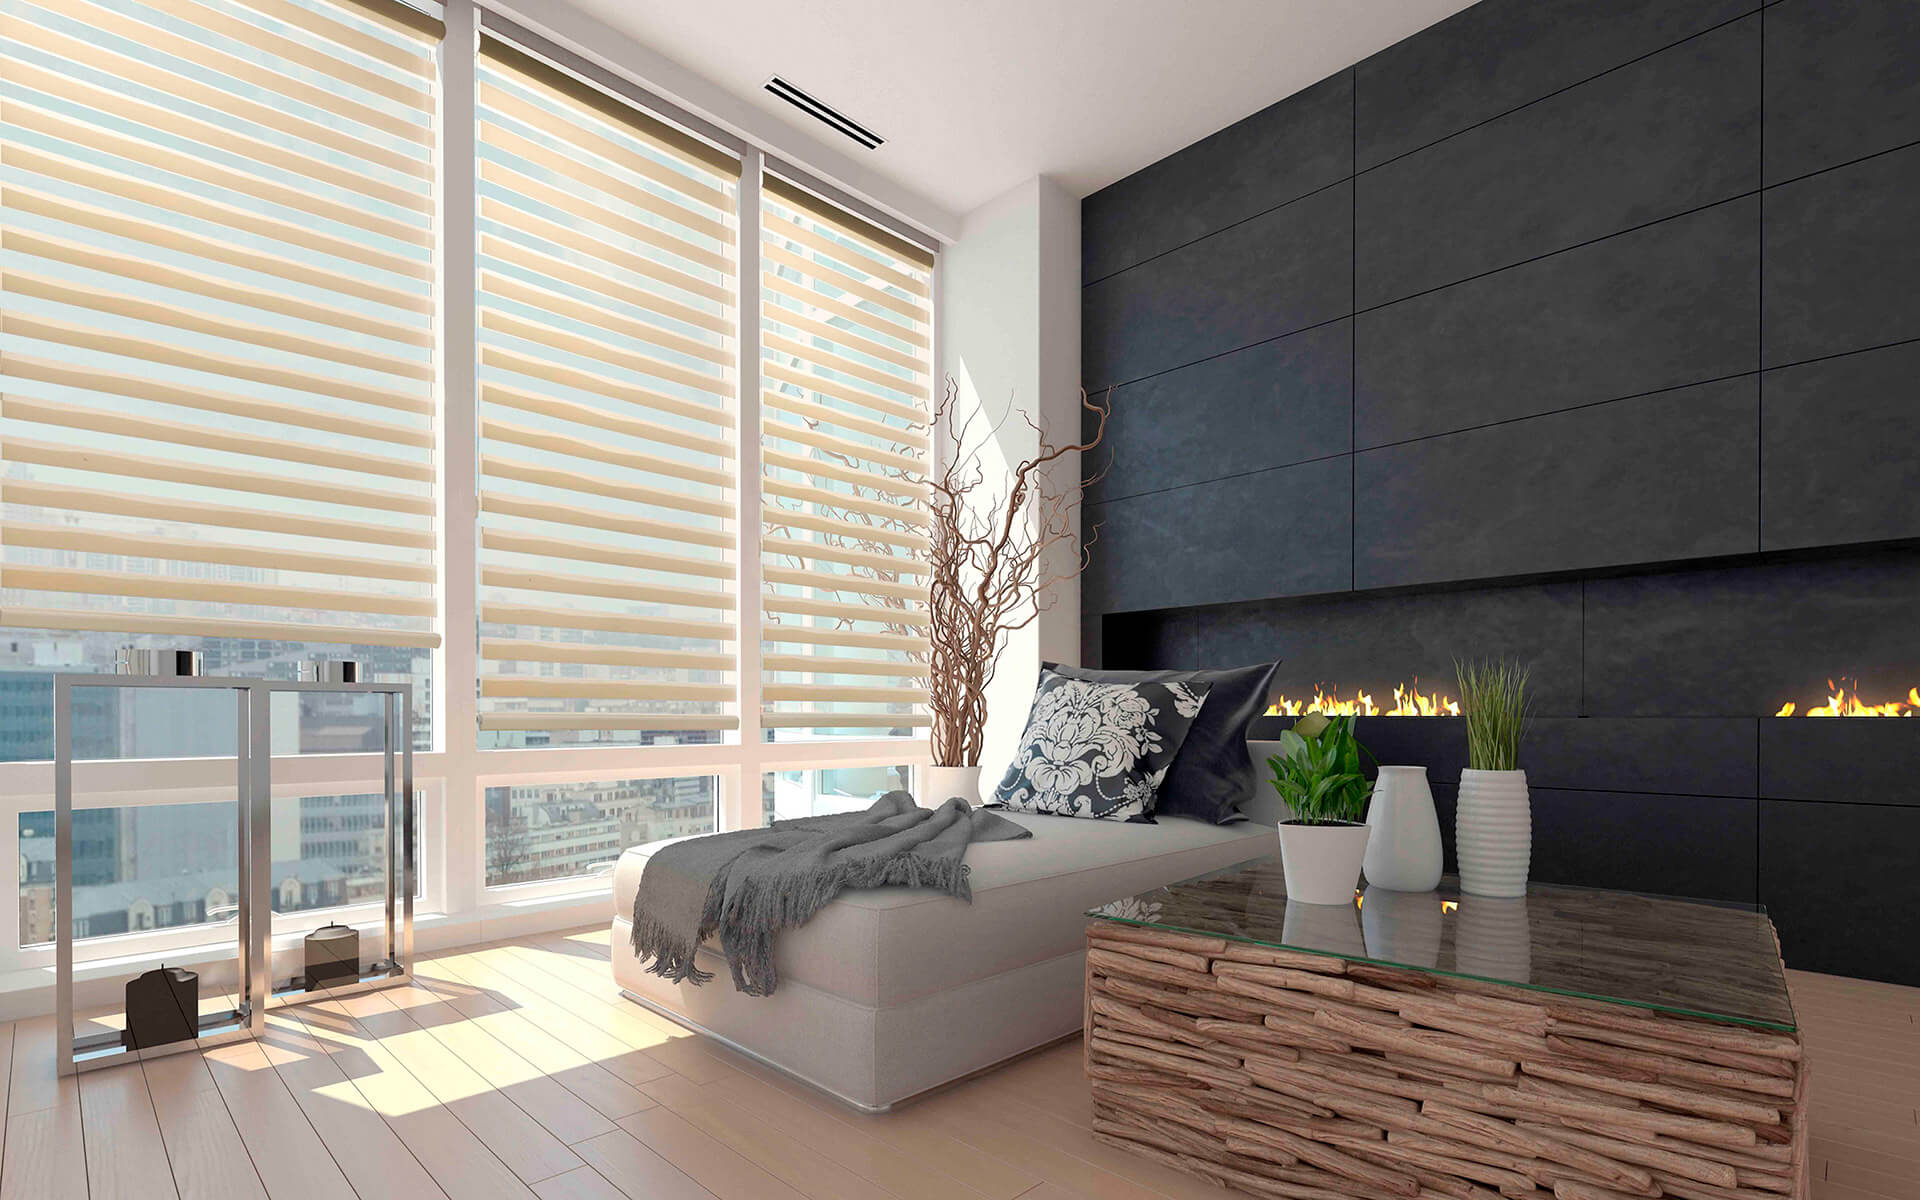 Rusty's Blinds - Blinds Winnipeg - Window Fashions - Interior Decorating